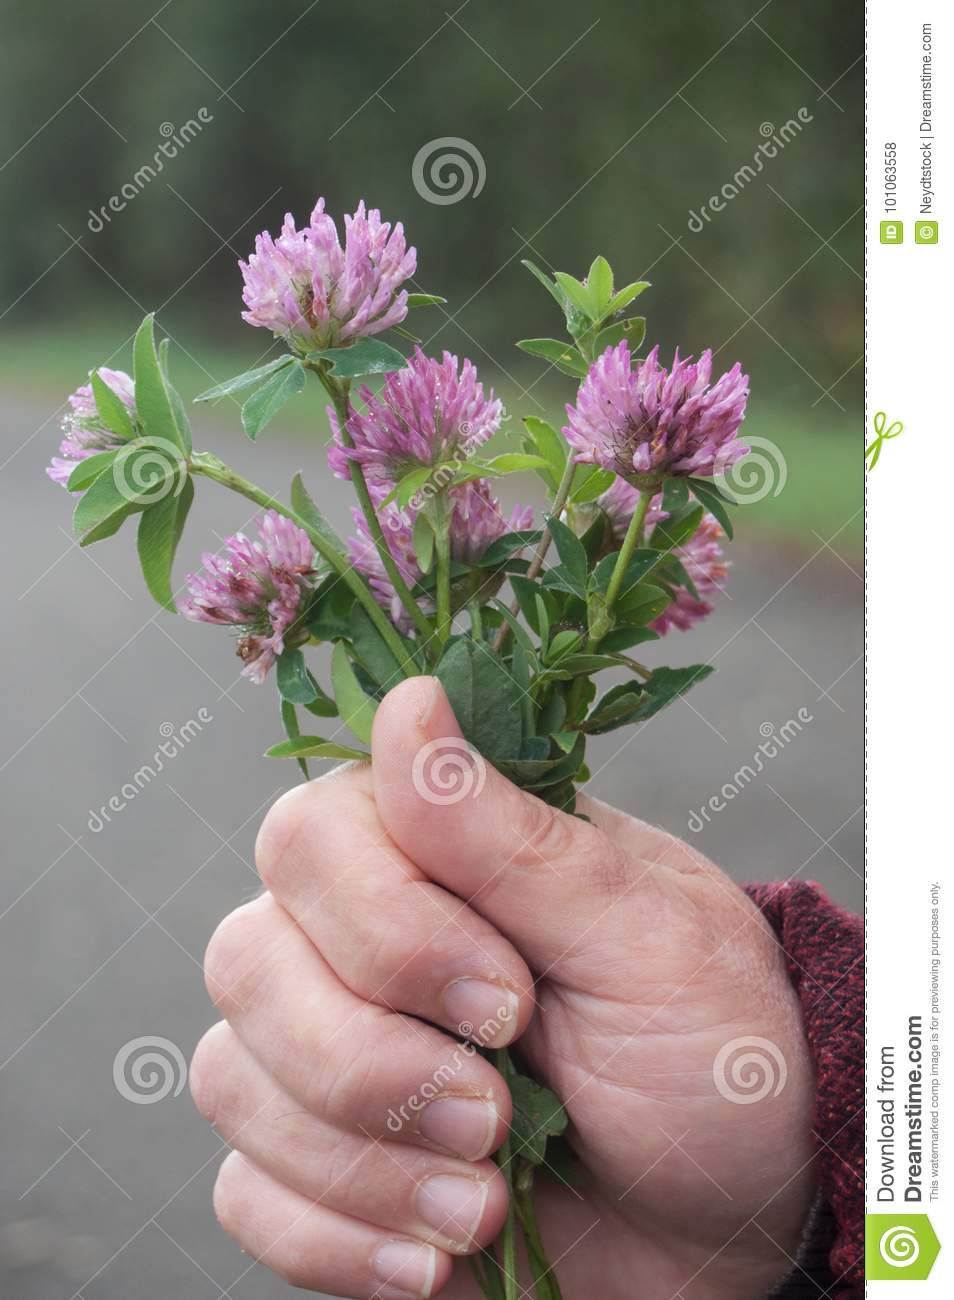 Purple Clover Flower In Hand Of Woman Stock Photo Image Of Offer